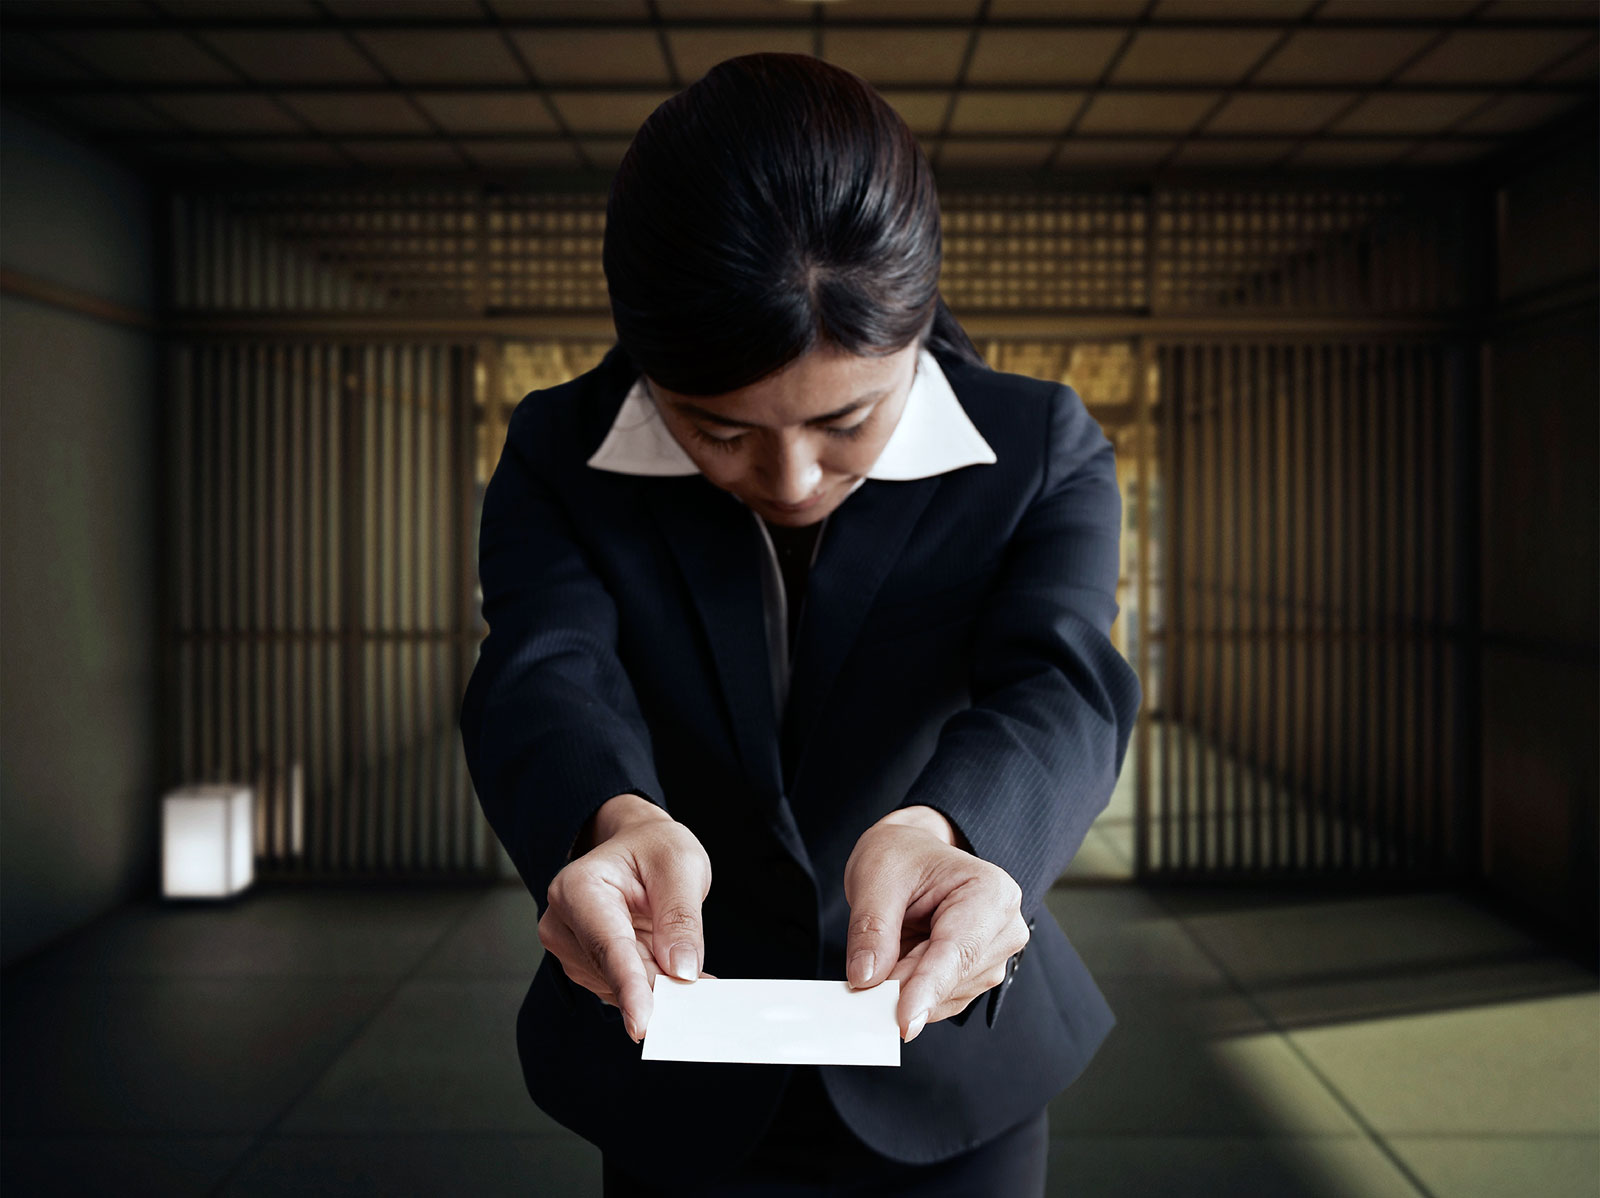 What You Need To Know About Exchanging Business Cards In Japan